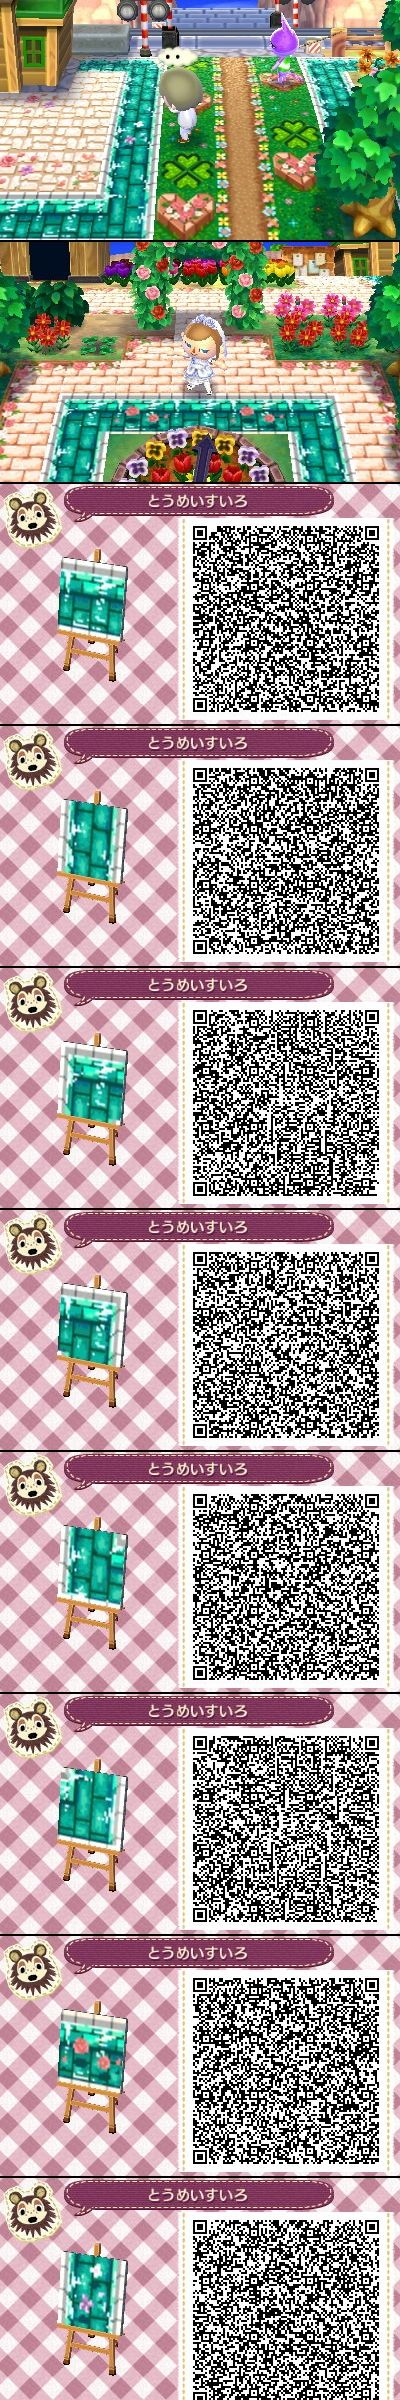 Animal Crossing New Leaf QR codes transparent water pattern